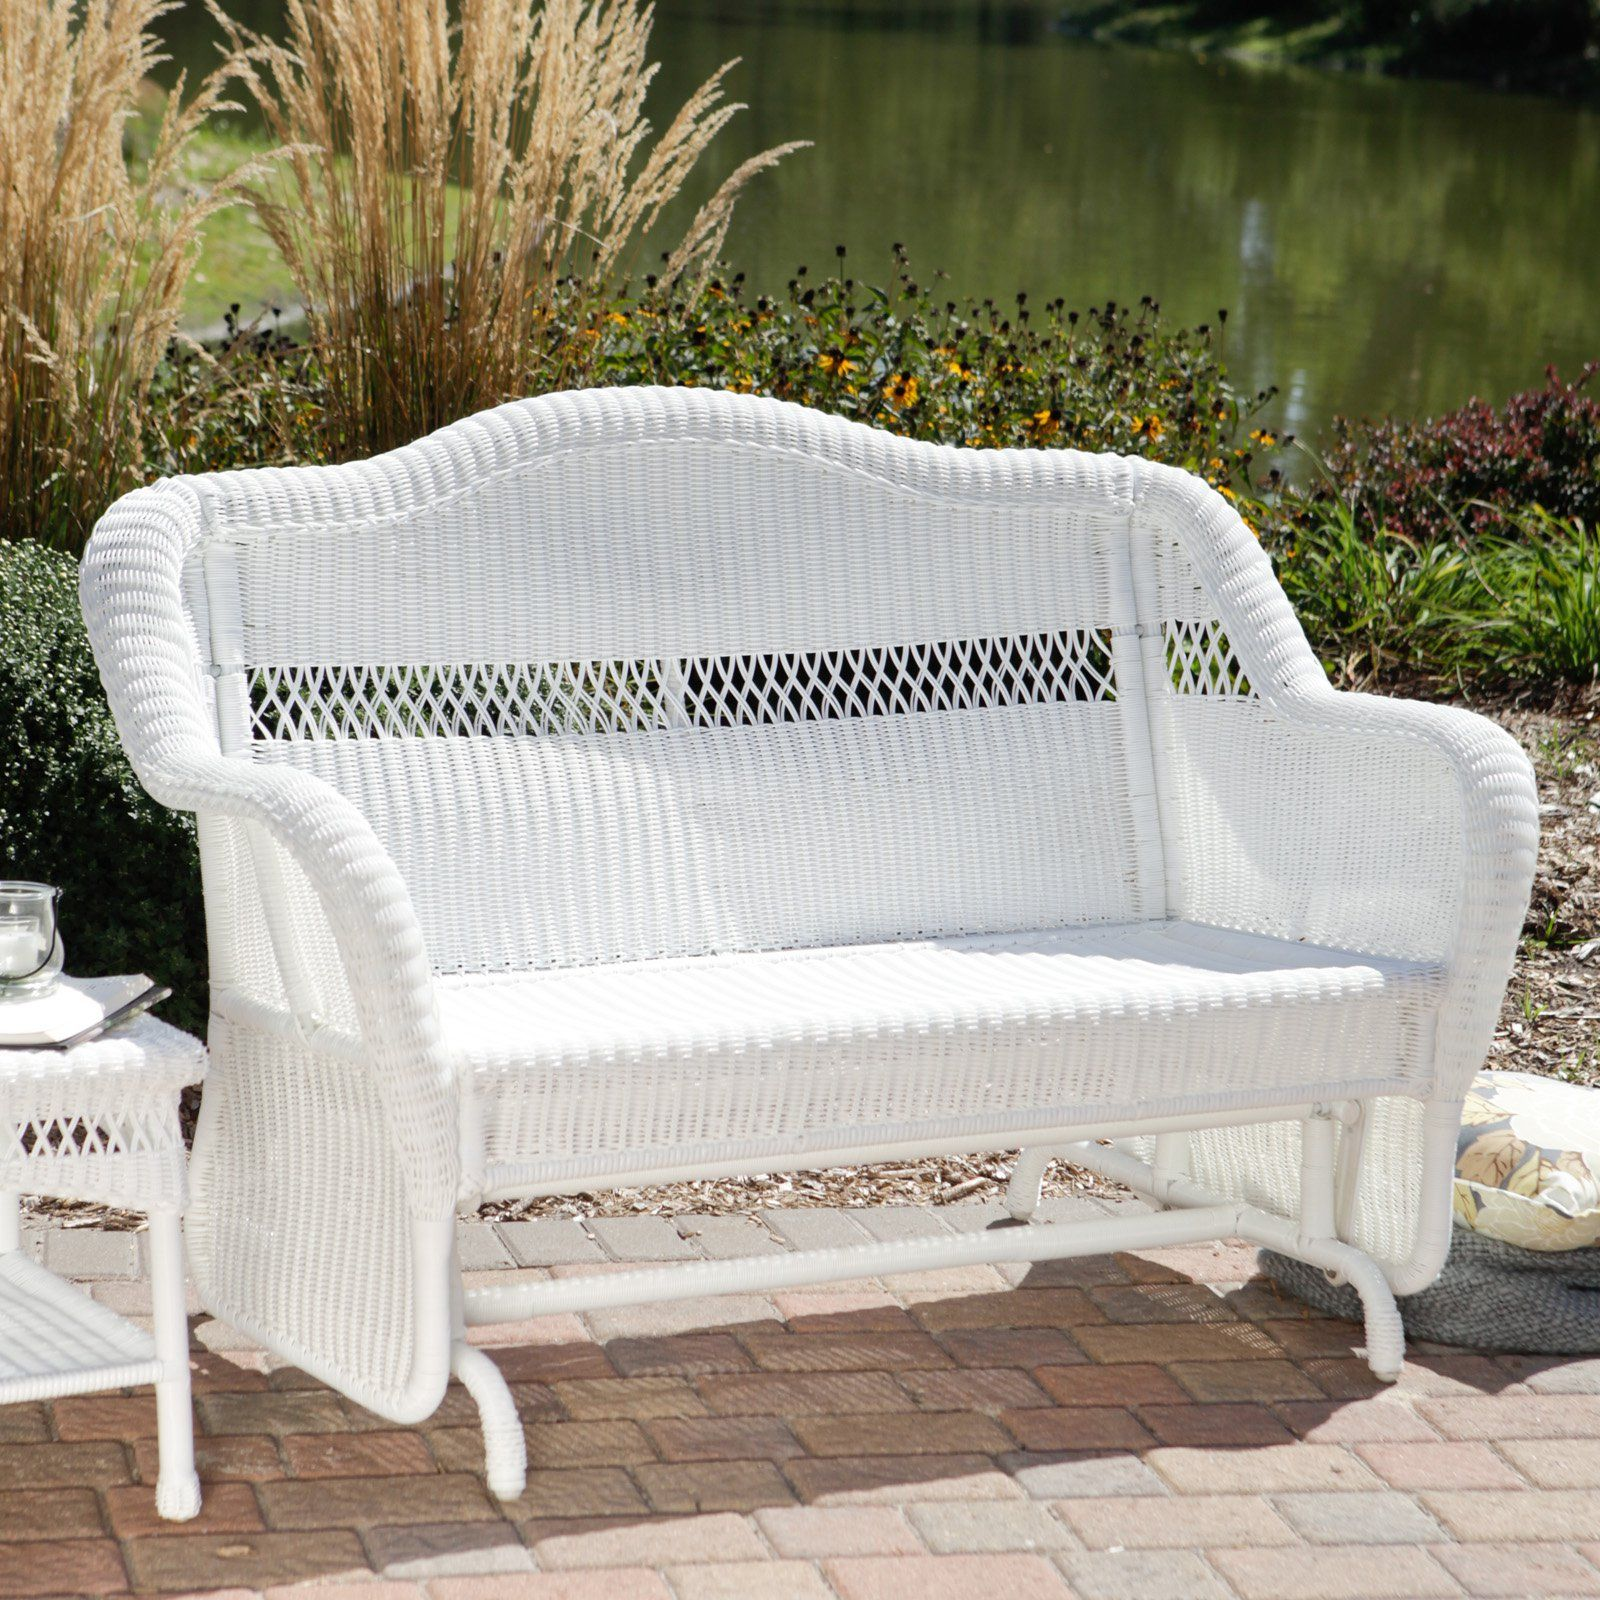 Miraculous Coral Coast Casco Bay Resin Wicker Outdoor Glider Loveseat Andrewgaddart Wooden Chair Designs For Living Room Andrewgaddartcom